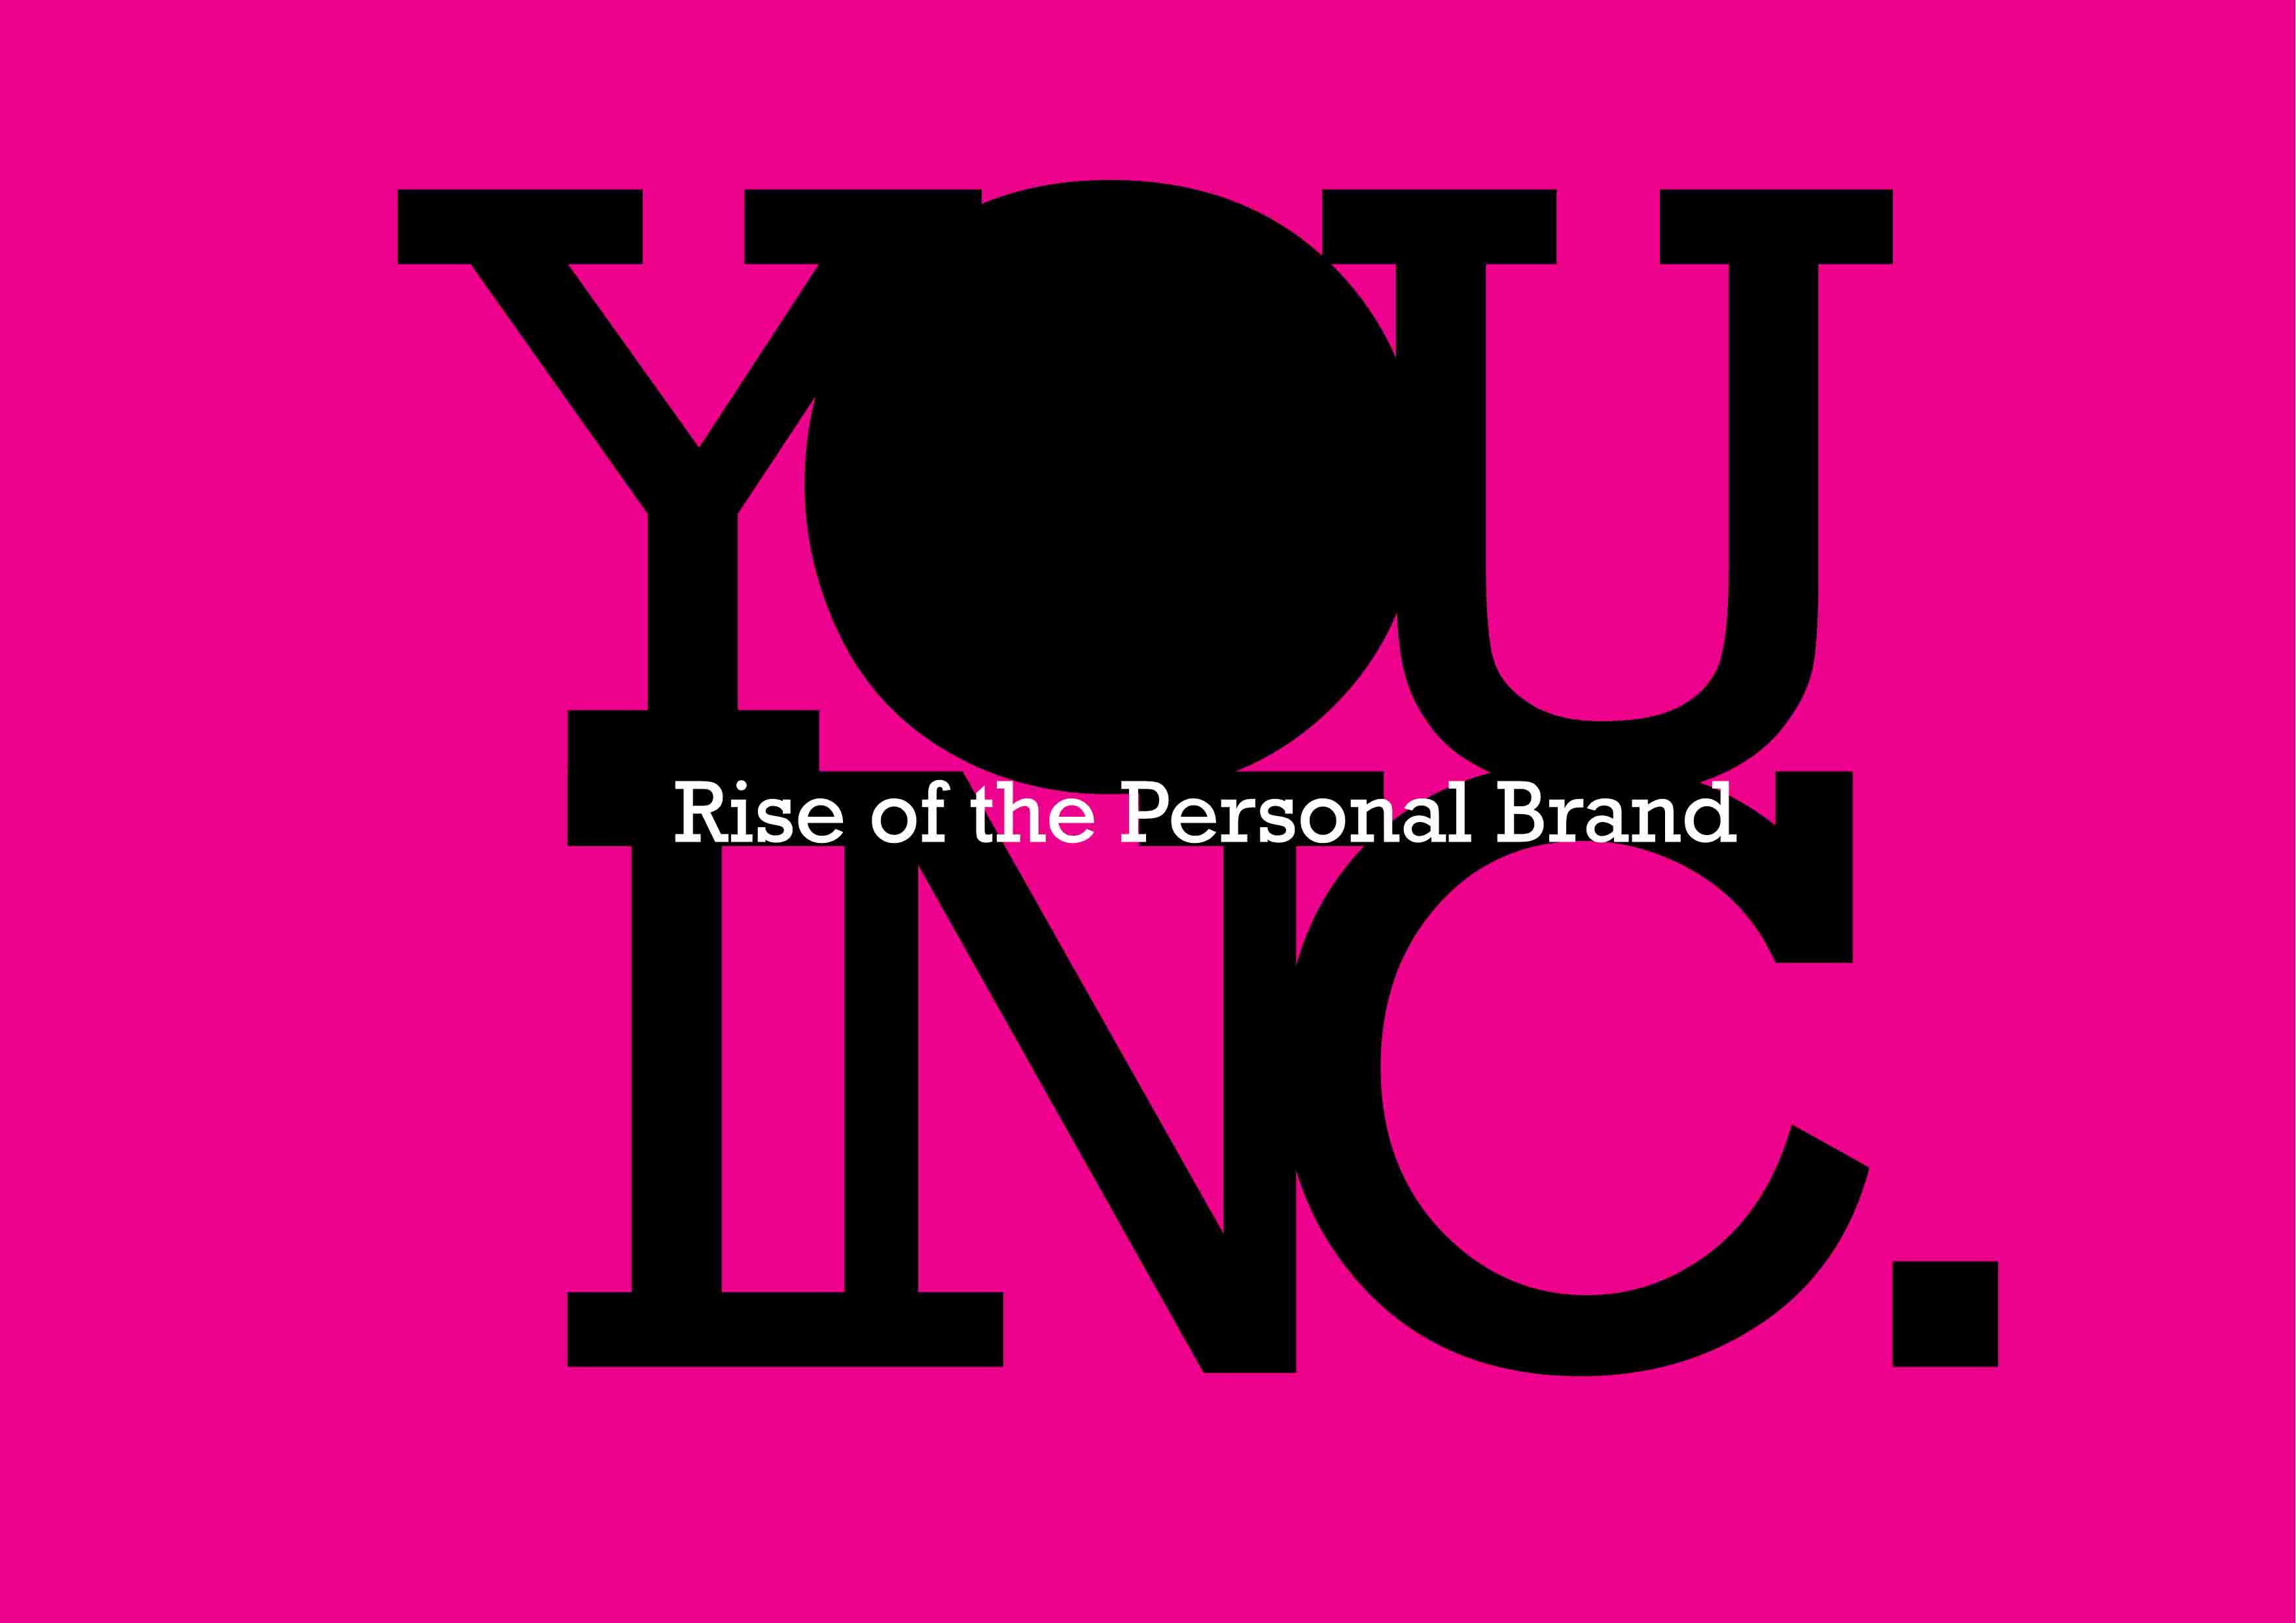 Determining and articulating your personal brand